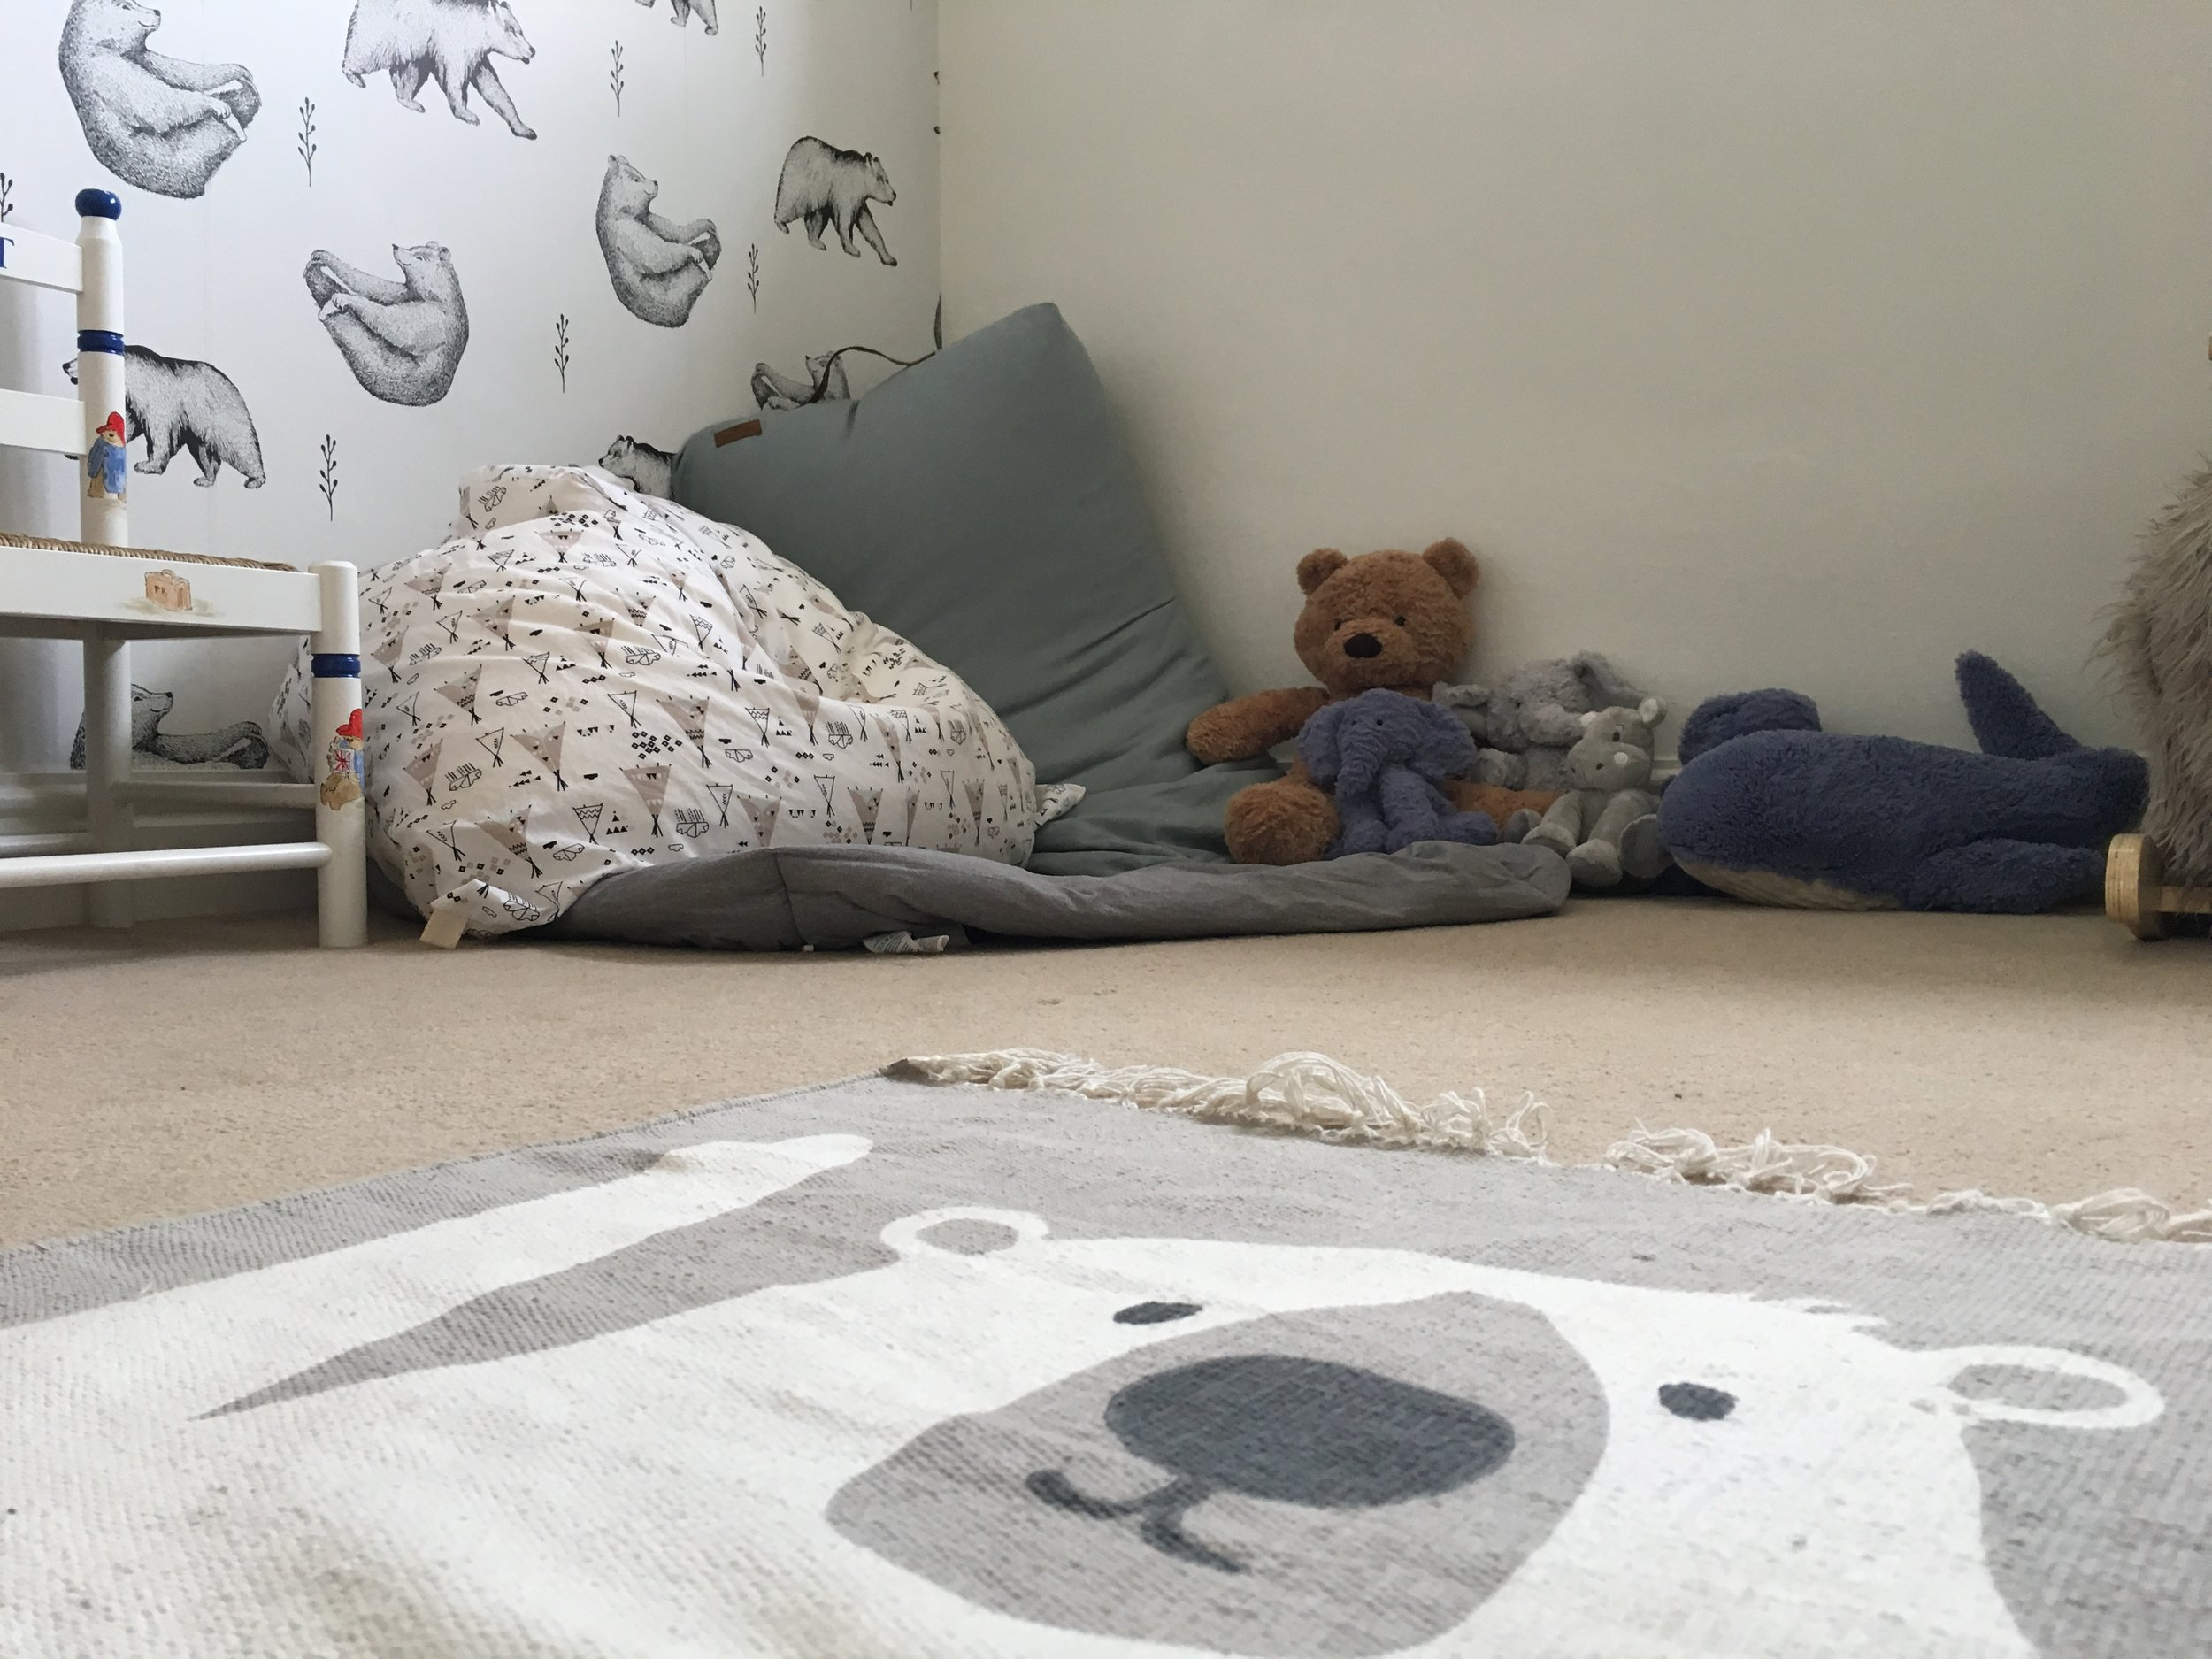 It was really important to us for Rupert's room to have a cozy corner for bedtime stories, so Dominique incorporated this by putting down some fabulous big beanbags